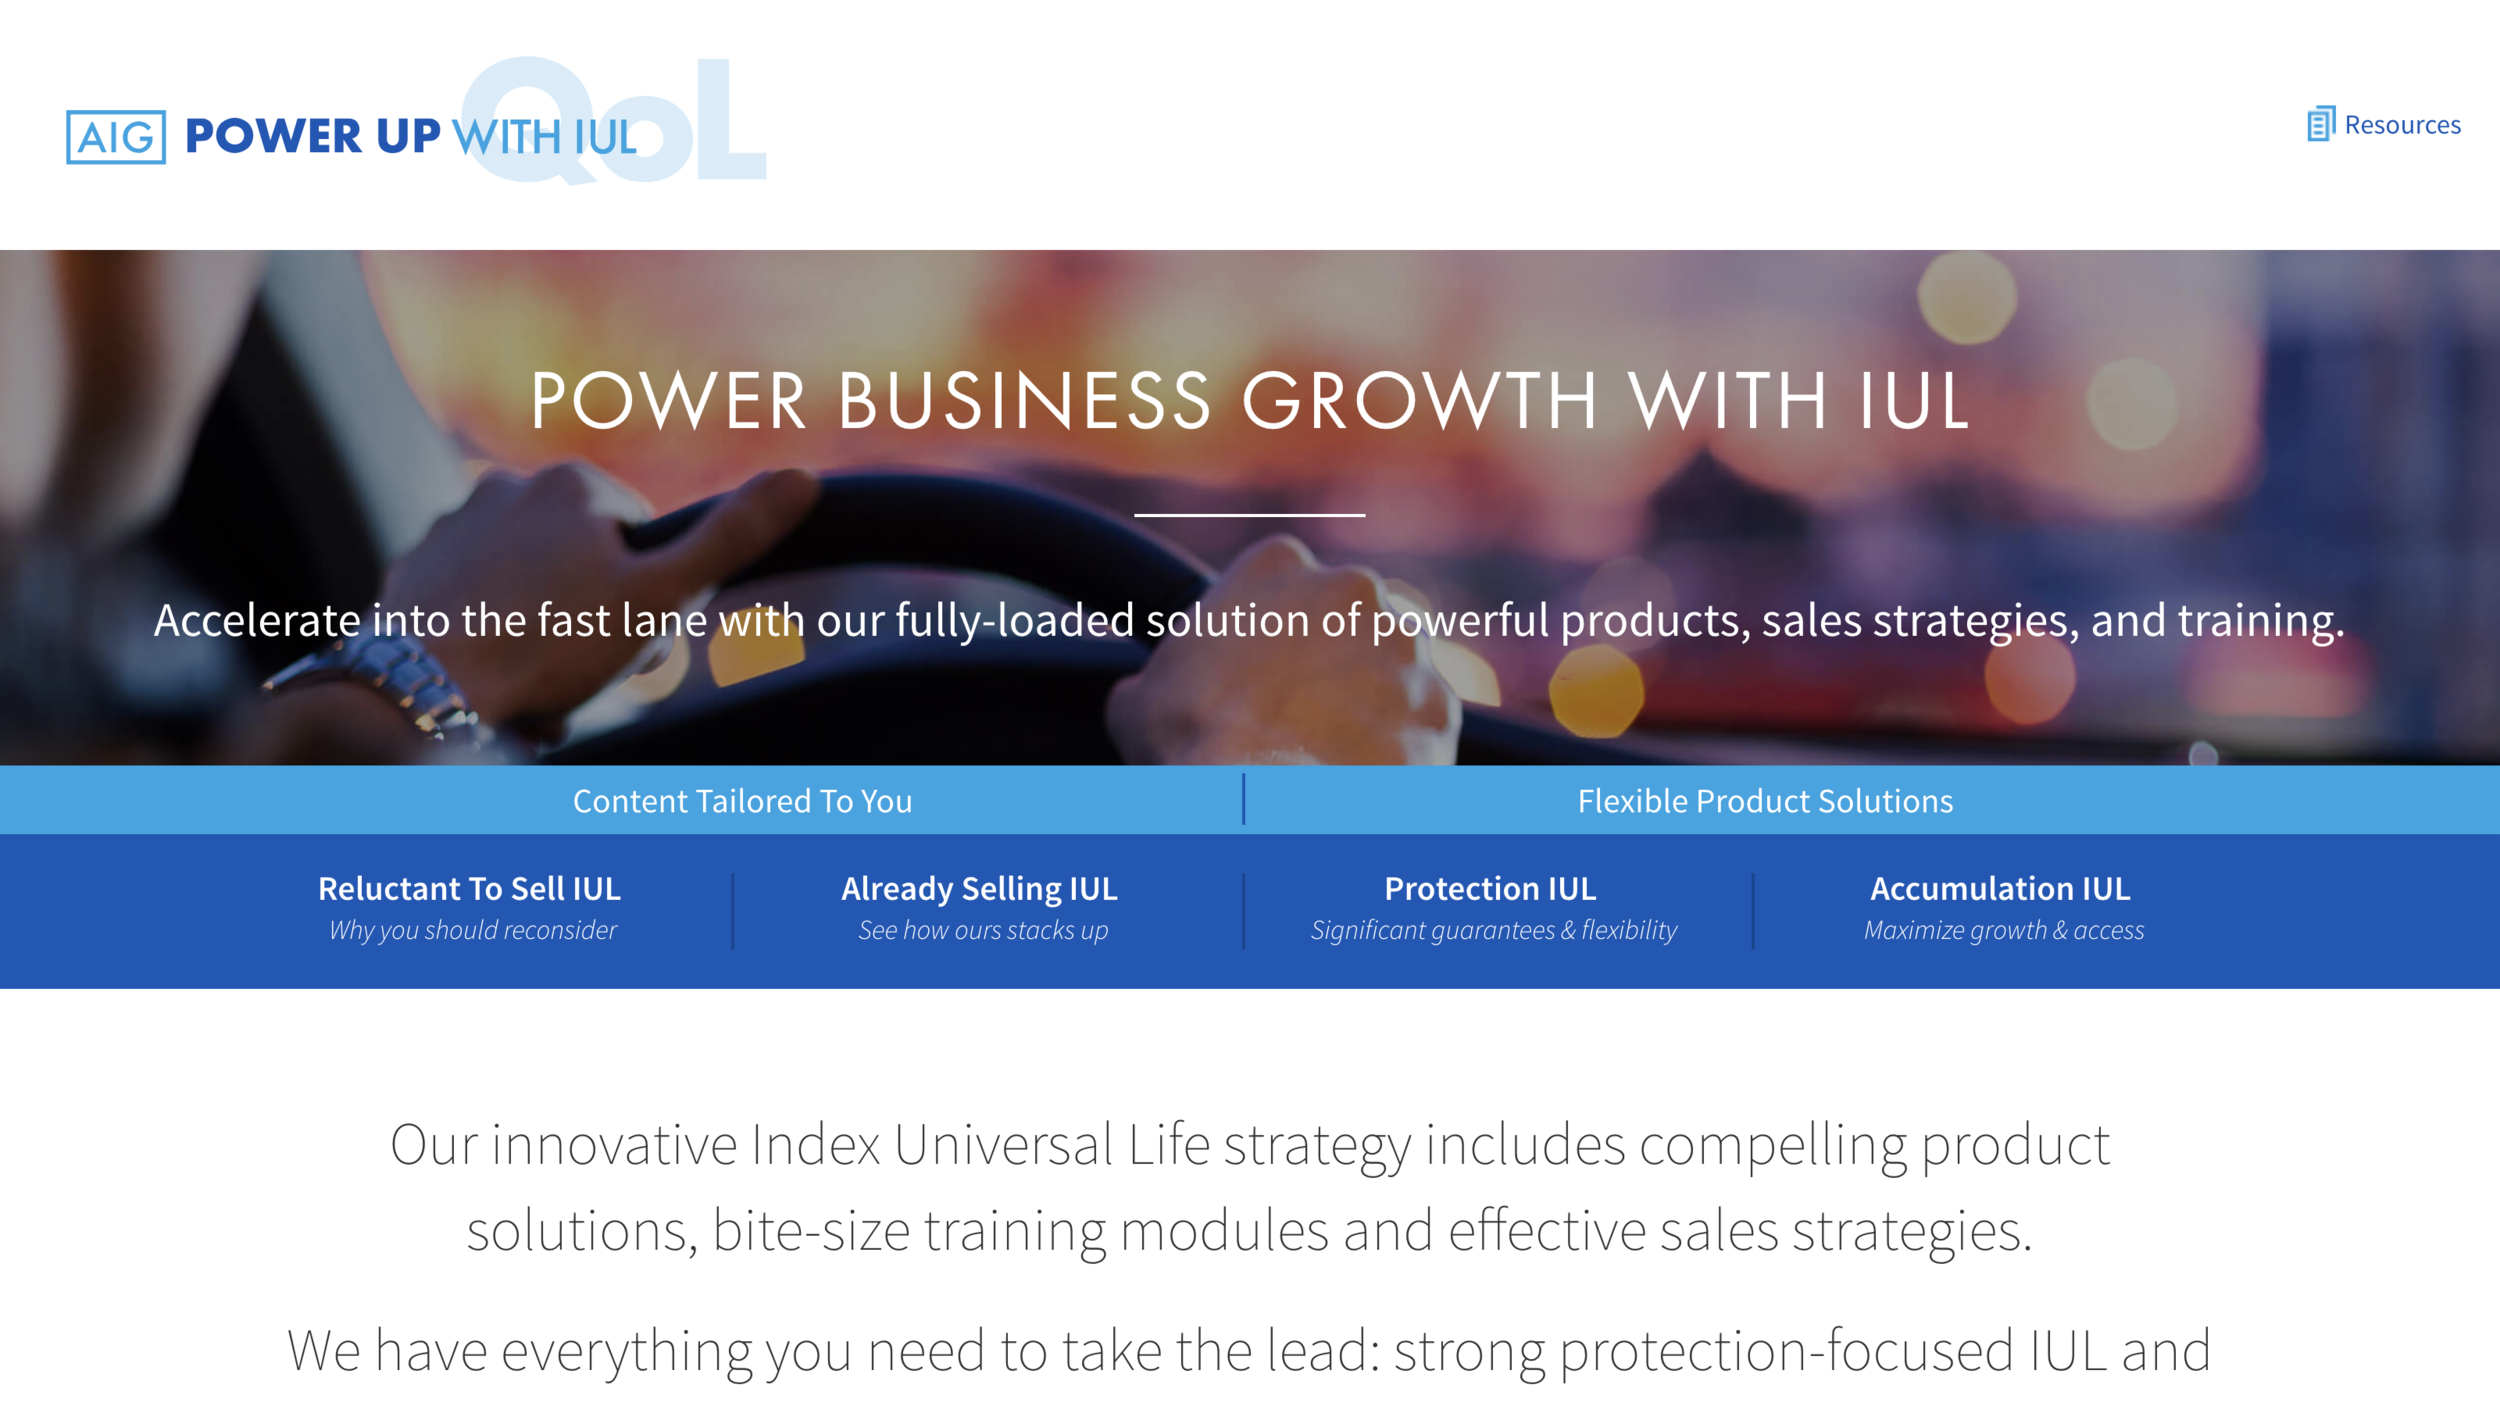 Power Up with IUL - All things IUL all in one place. Strong accumulation IUL and protection focused IUL products along with training and all the conversation starters, presentation tools, sales ideas and promotion you could need to power up your IUL business.